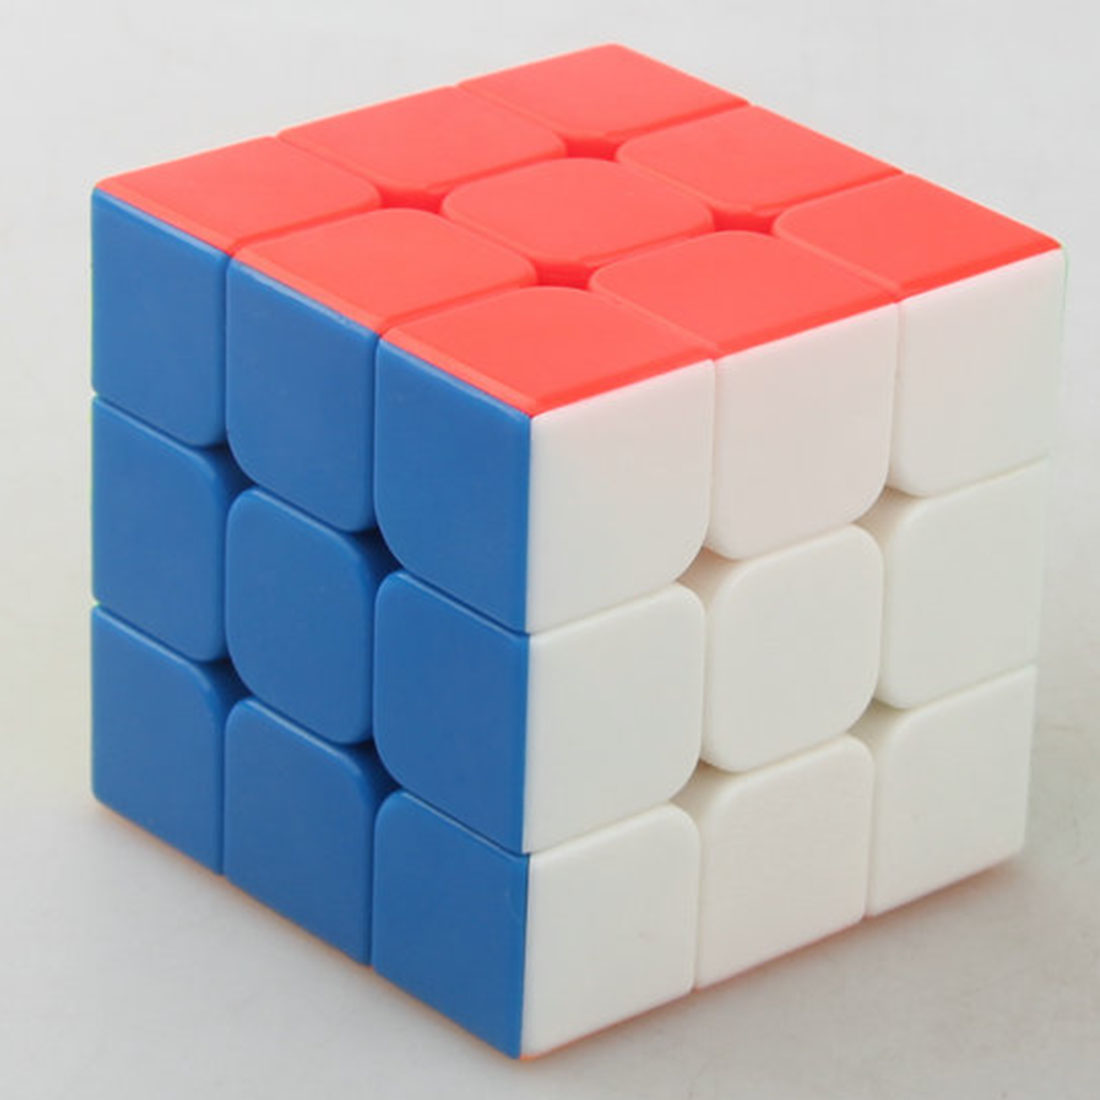 Surwish YJ RuiLong Magnetic 3x3 Magic Cube Educational Toys For Brain Trainning - Colorful